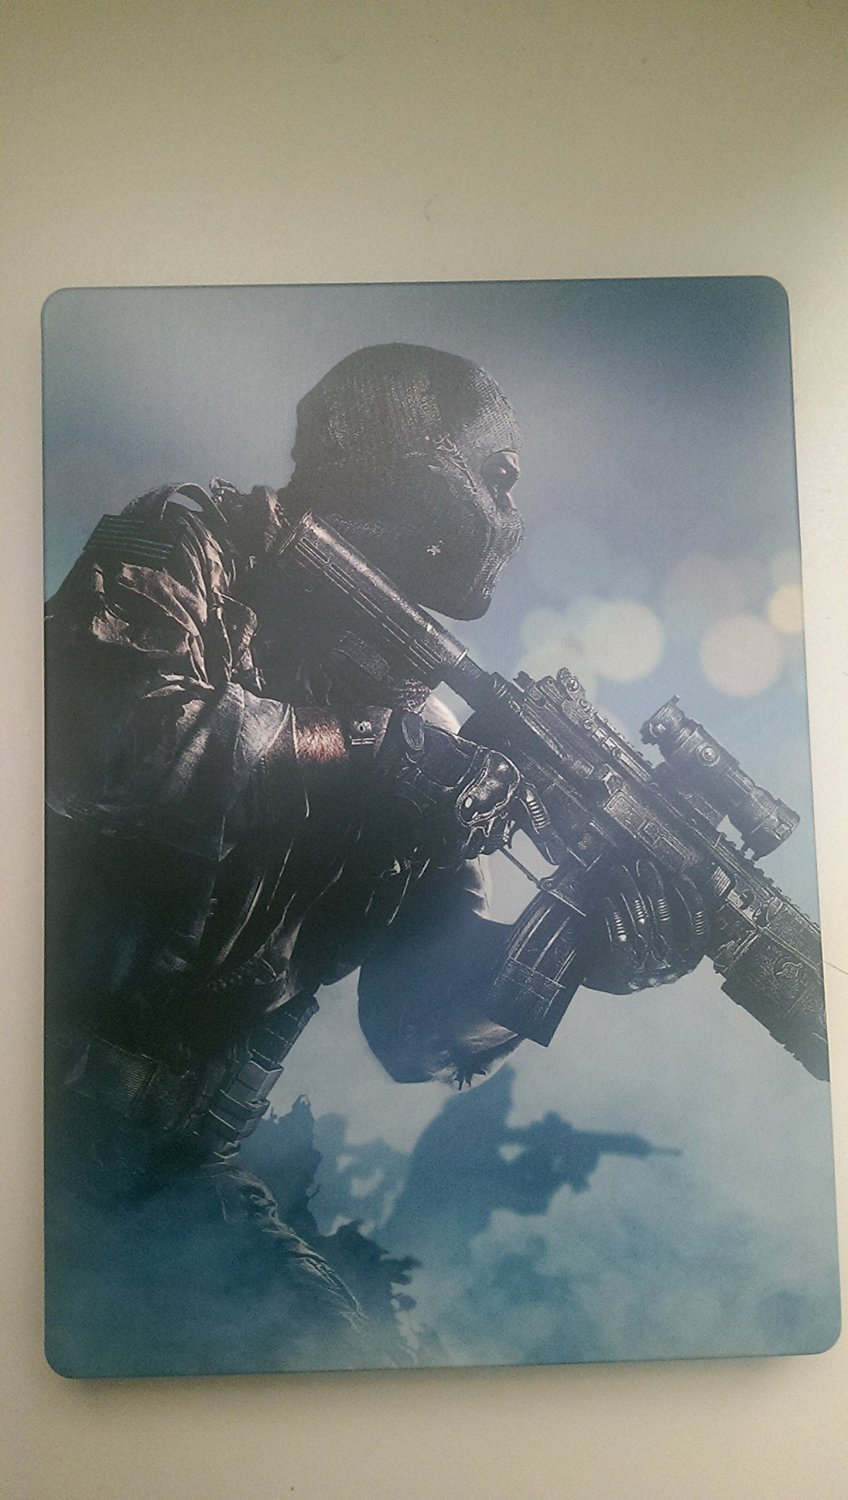 Call of Duty: Ghosts XBOX 360(MFG Age: 17 years and up)(With 20,000 possible combinations, this is the most flexible and comprehensive character customization in Call of Duty history)